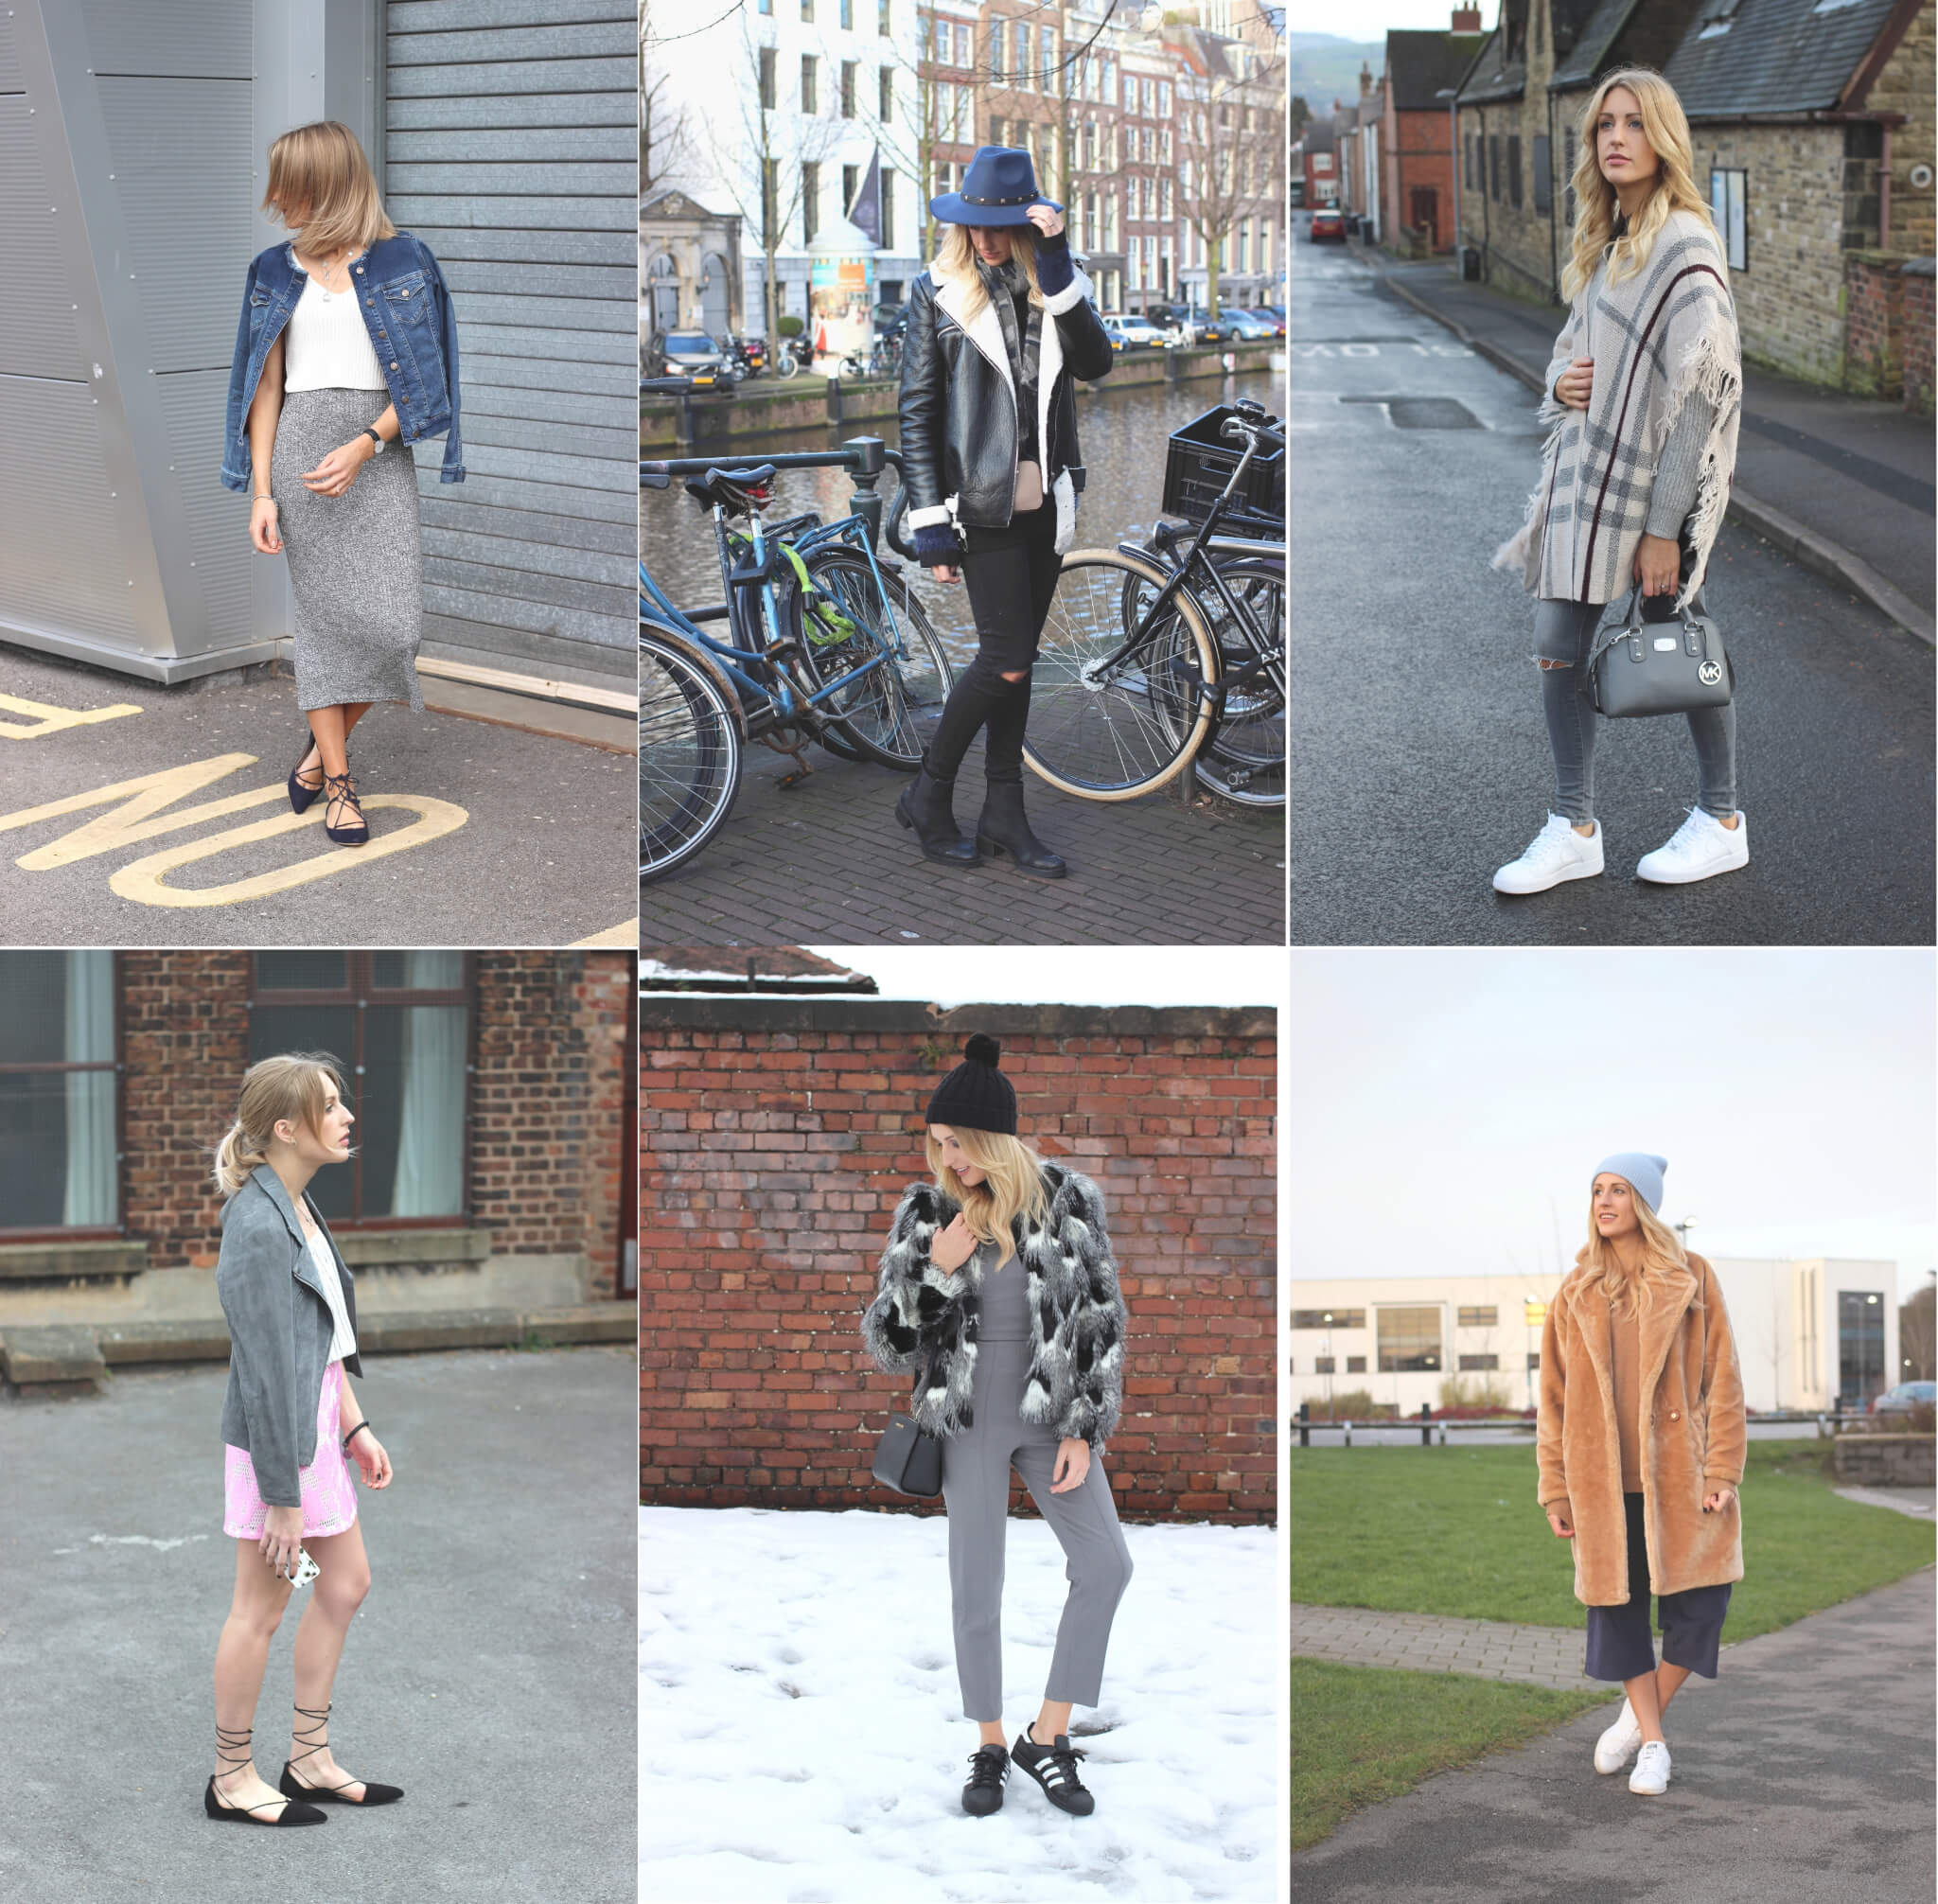 Favouritie Outfits on 2015 on fashion blog lurchhoundloves